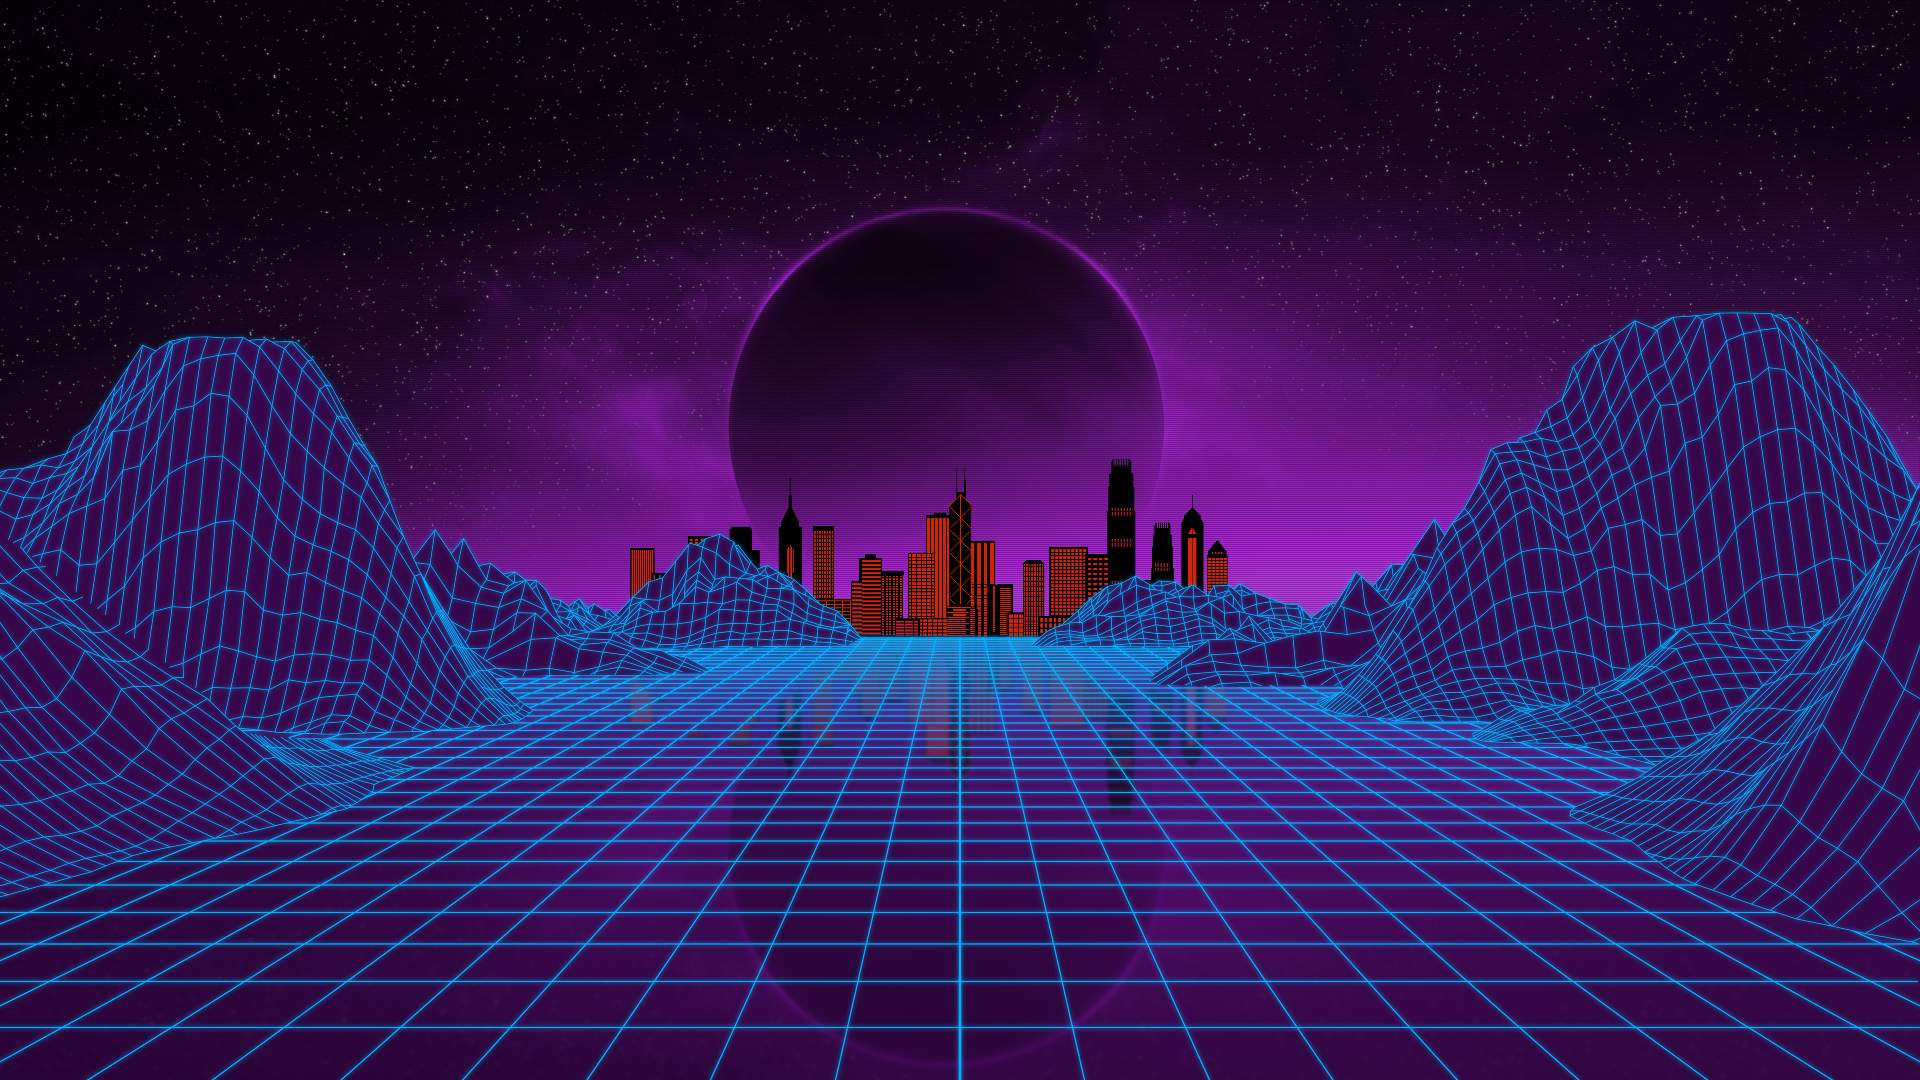 General 1920x1080 synthwave retrowave Retrowave grid mountains city